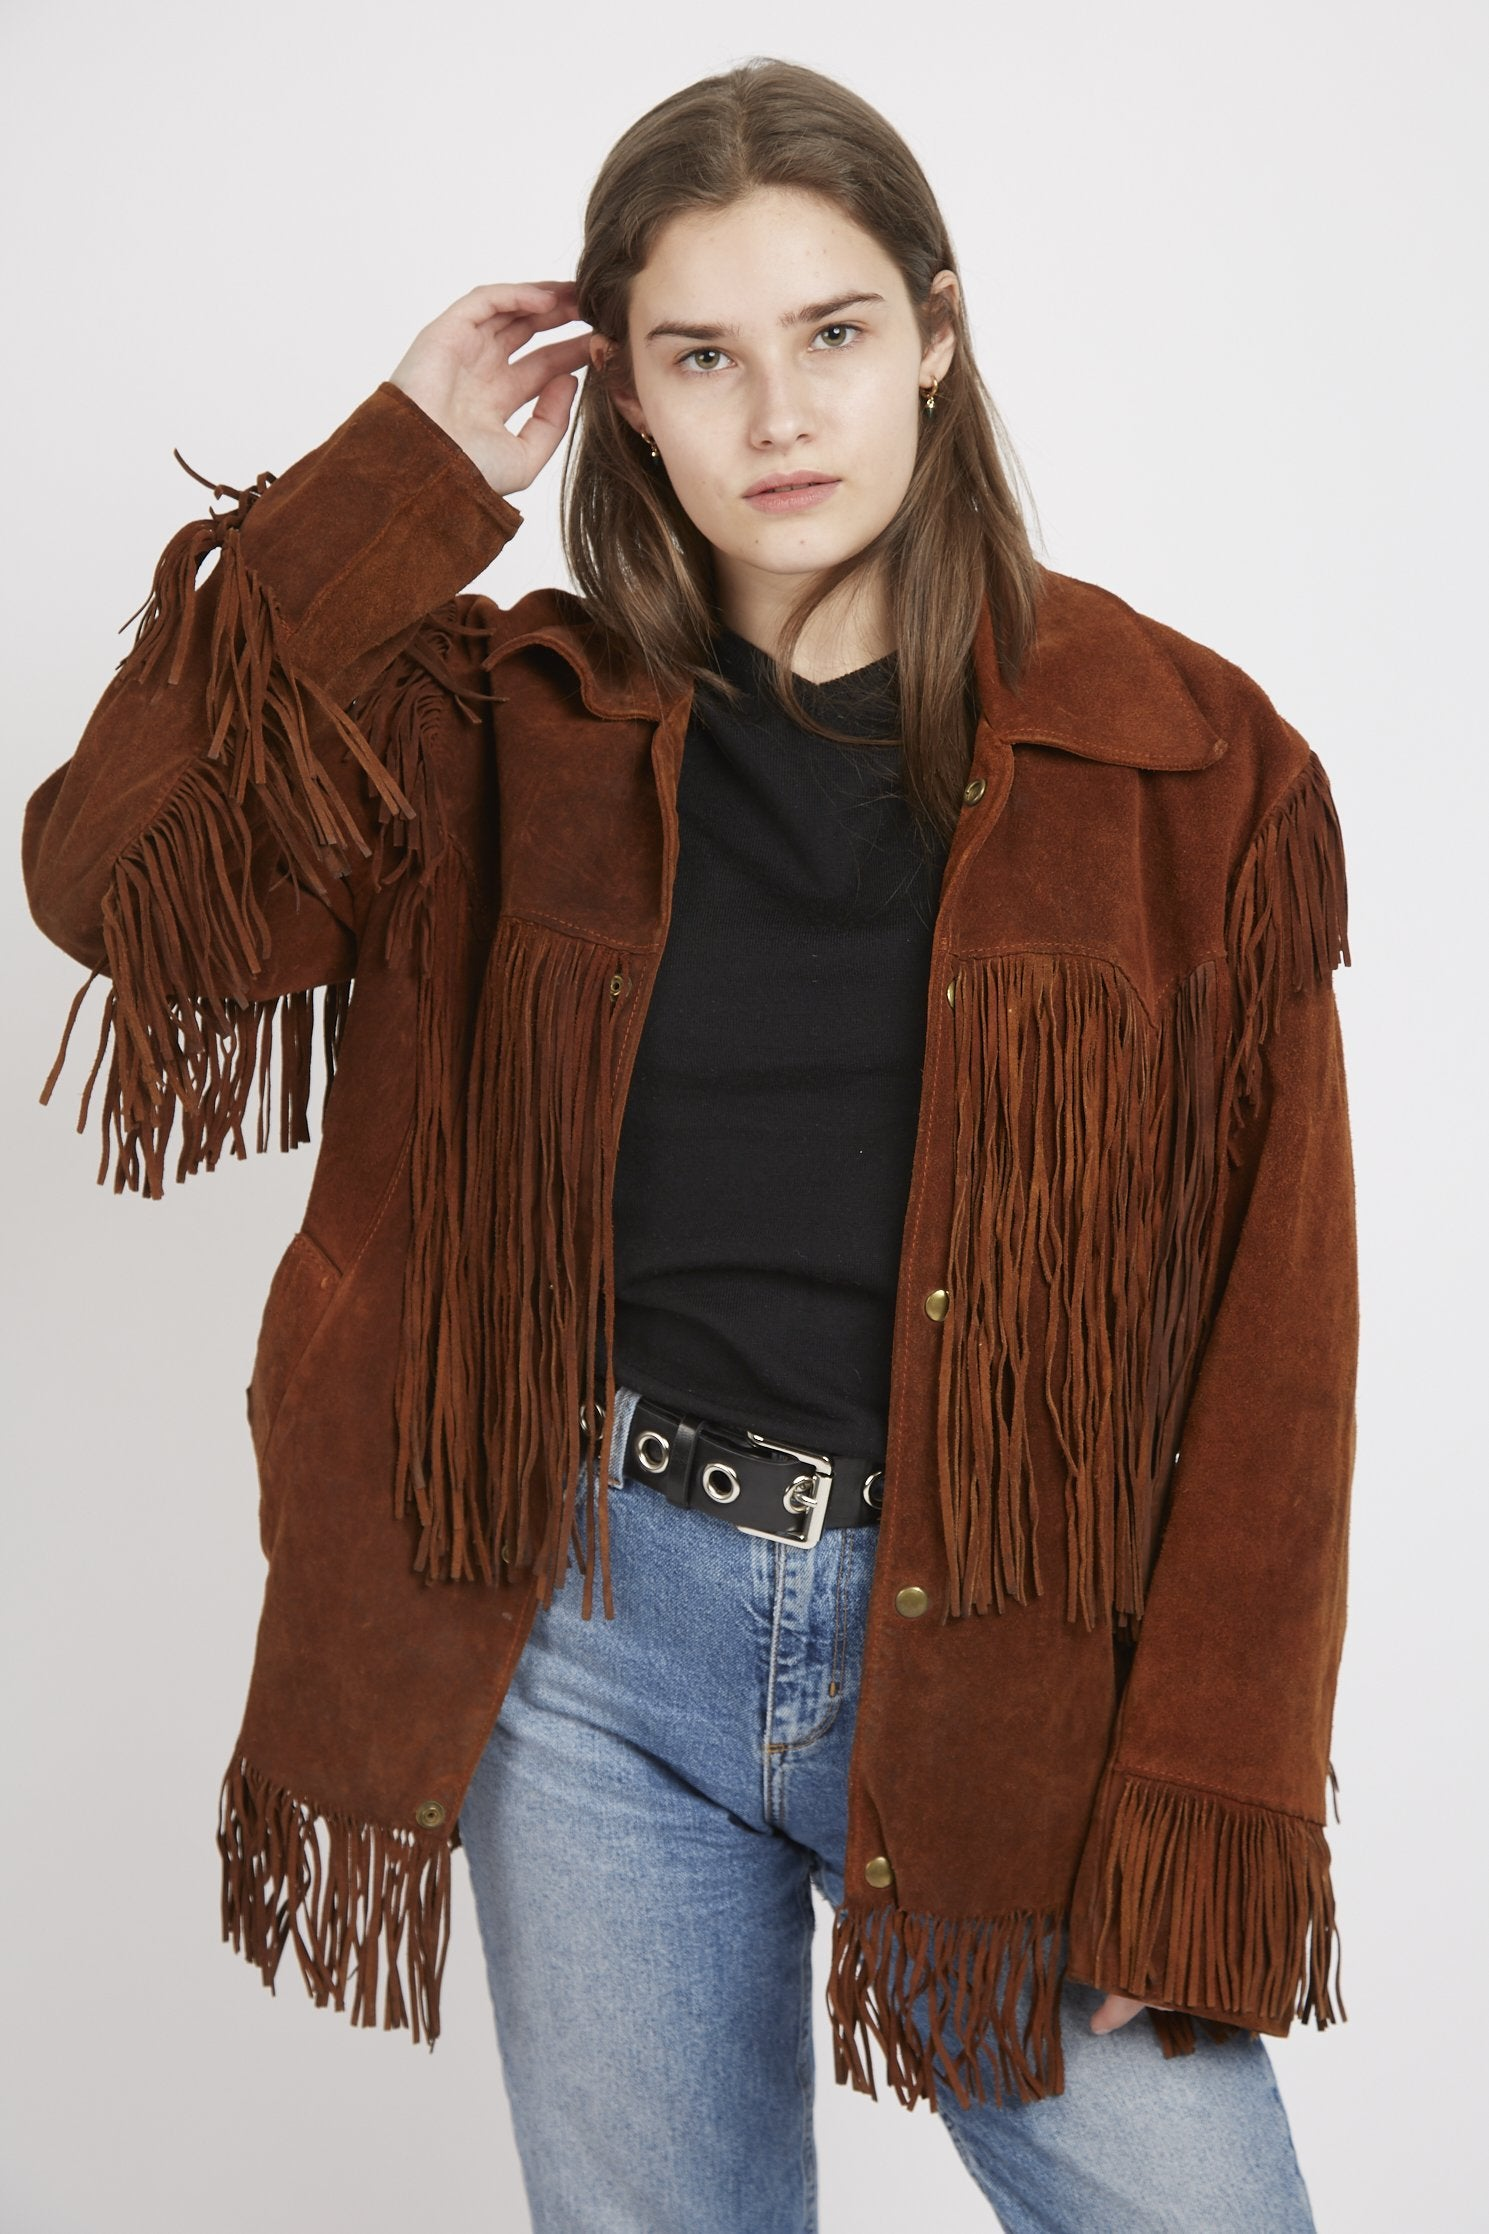 Essential of the month: Cowboy Suede Jackets